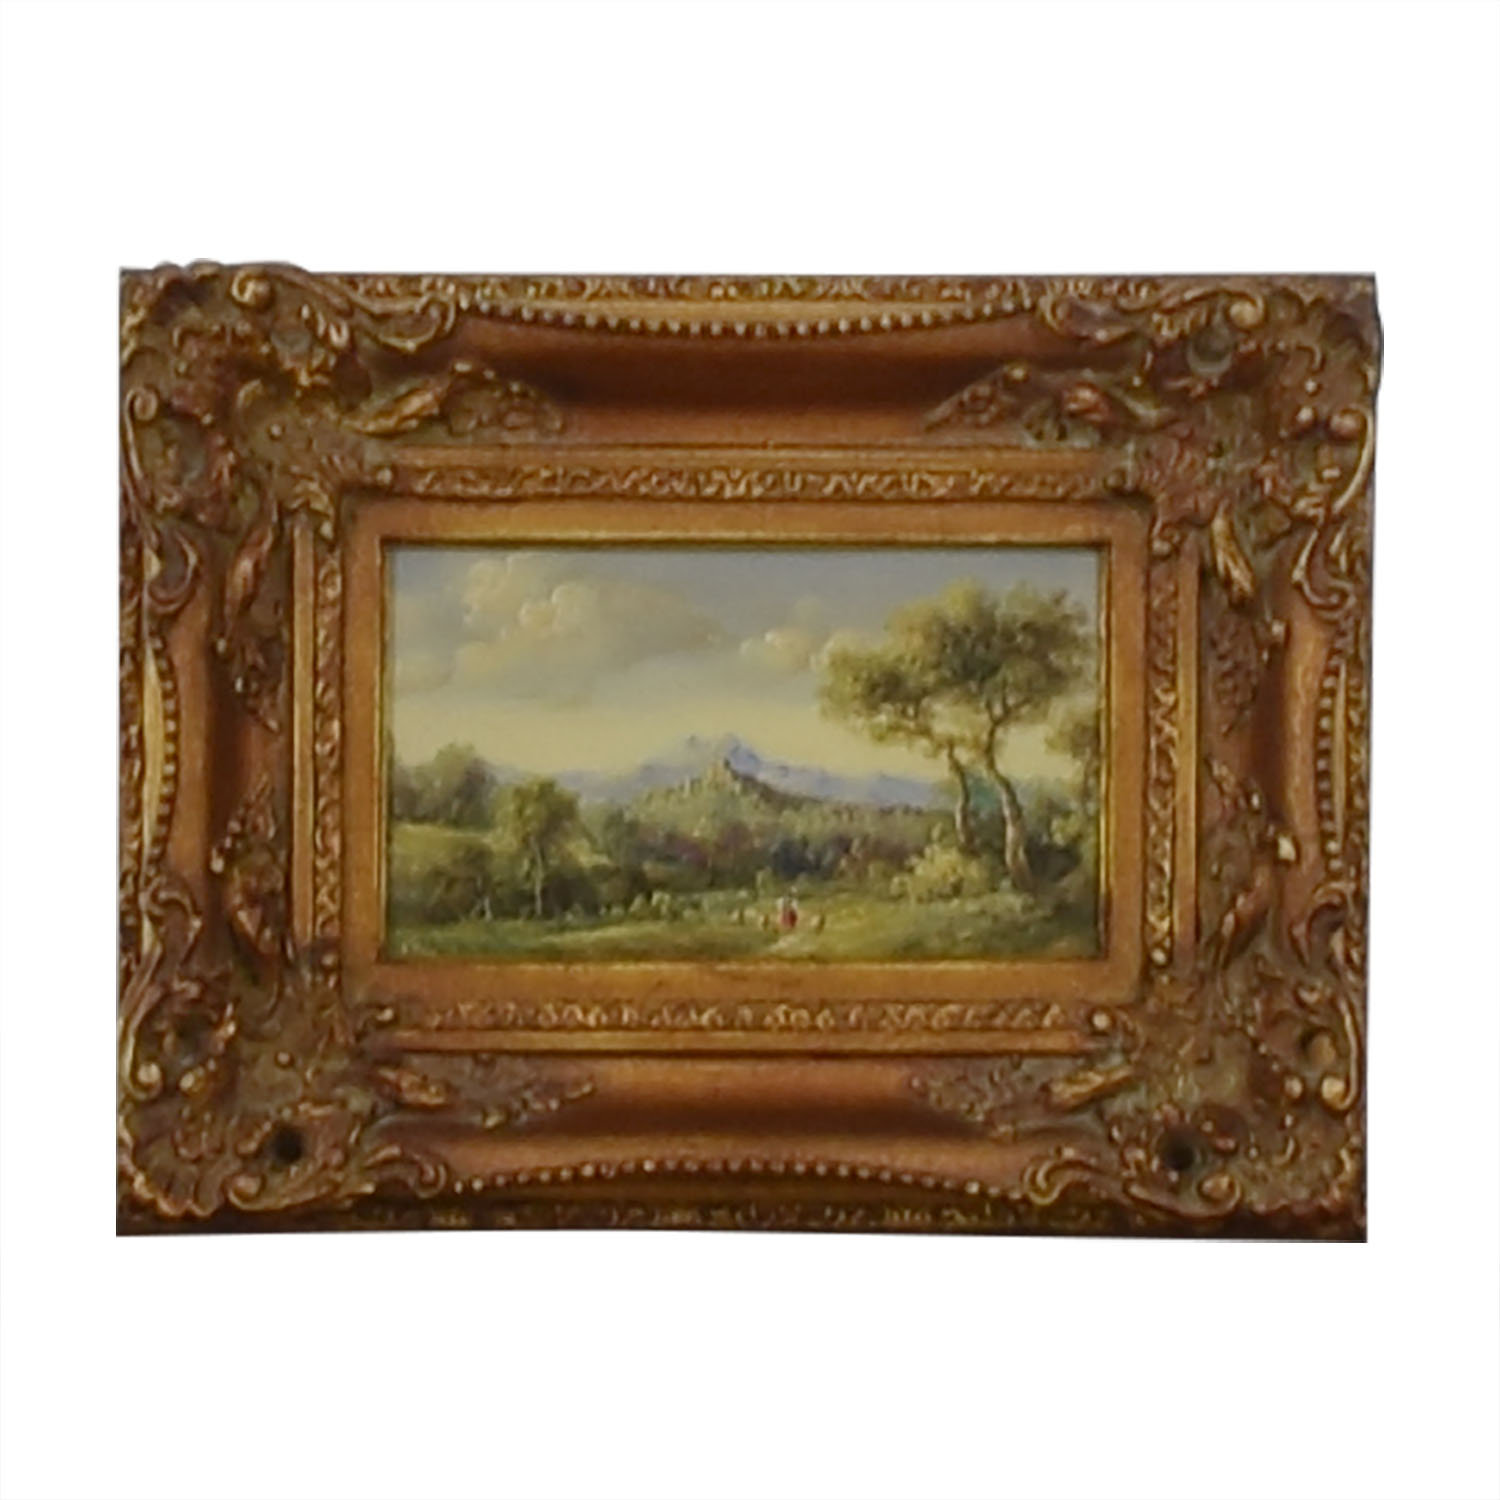 Framed Landscape Painting on sale